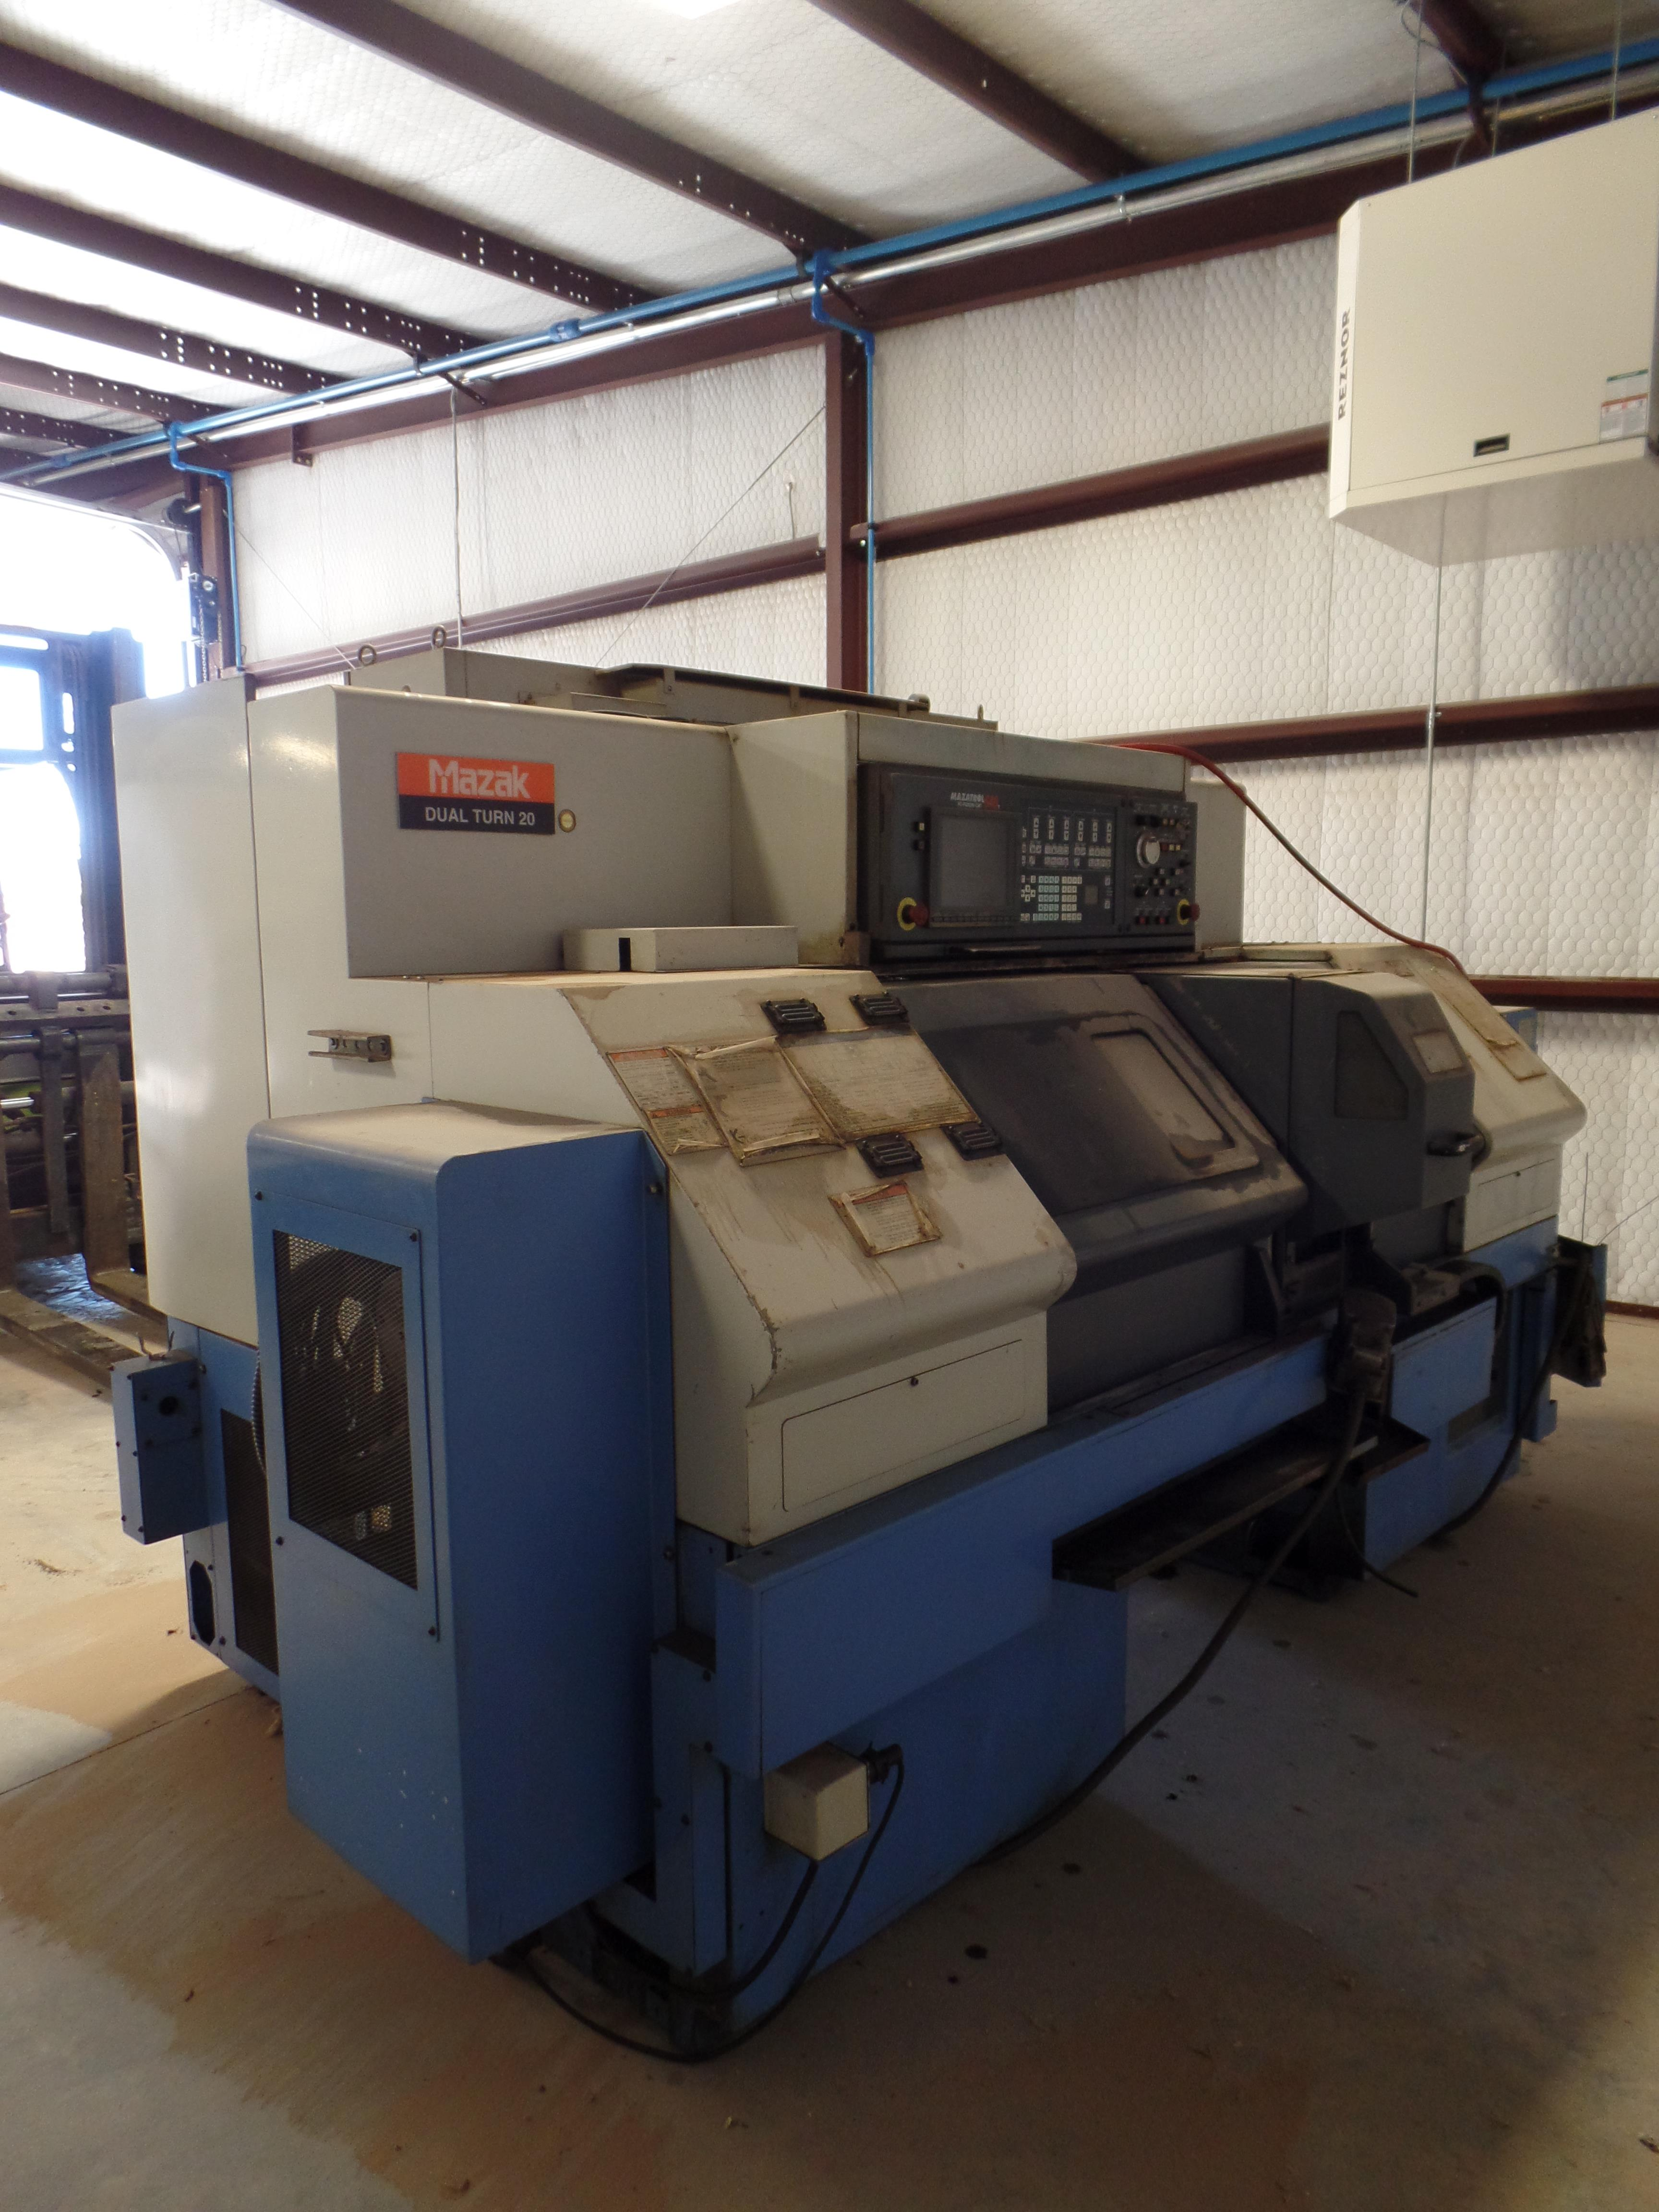 Lot 15 - 2003 Mazak Dual Turn 20 4 Axis Twin Spindle Twin Turret Opposed CNC Turning Center, rear discharge